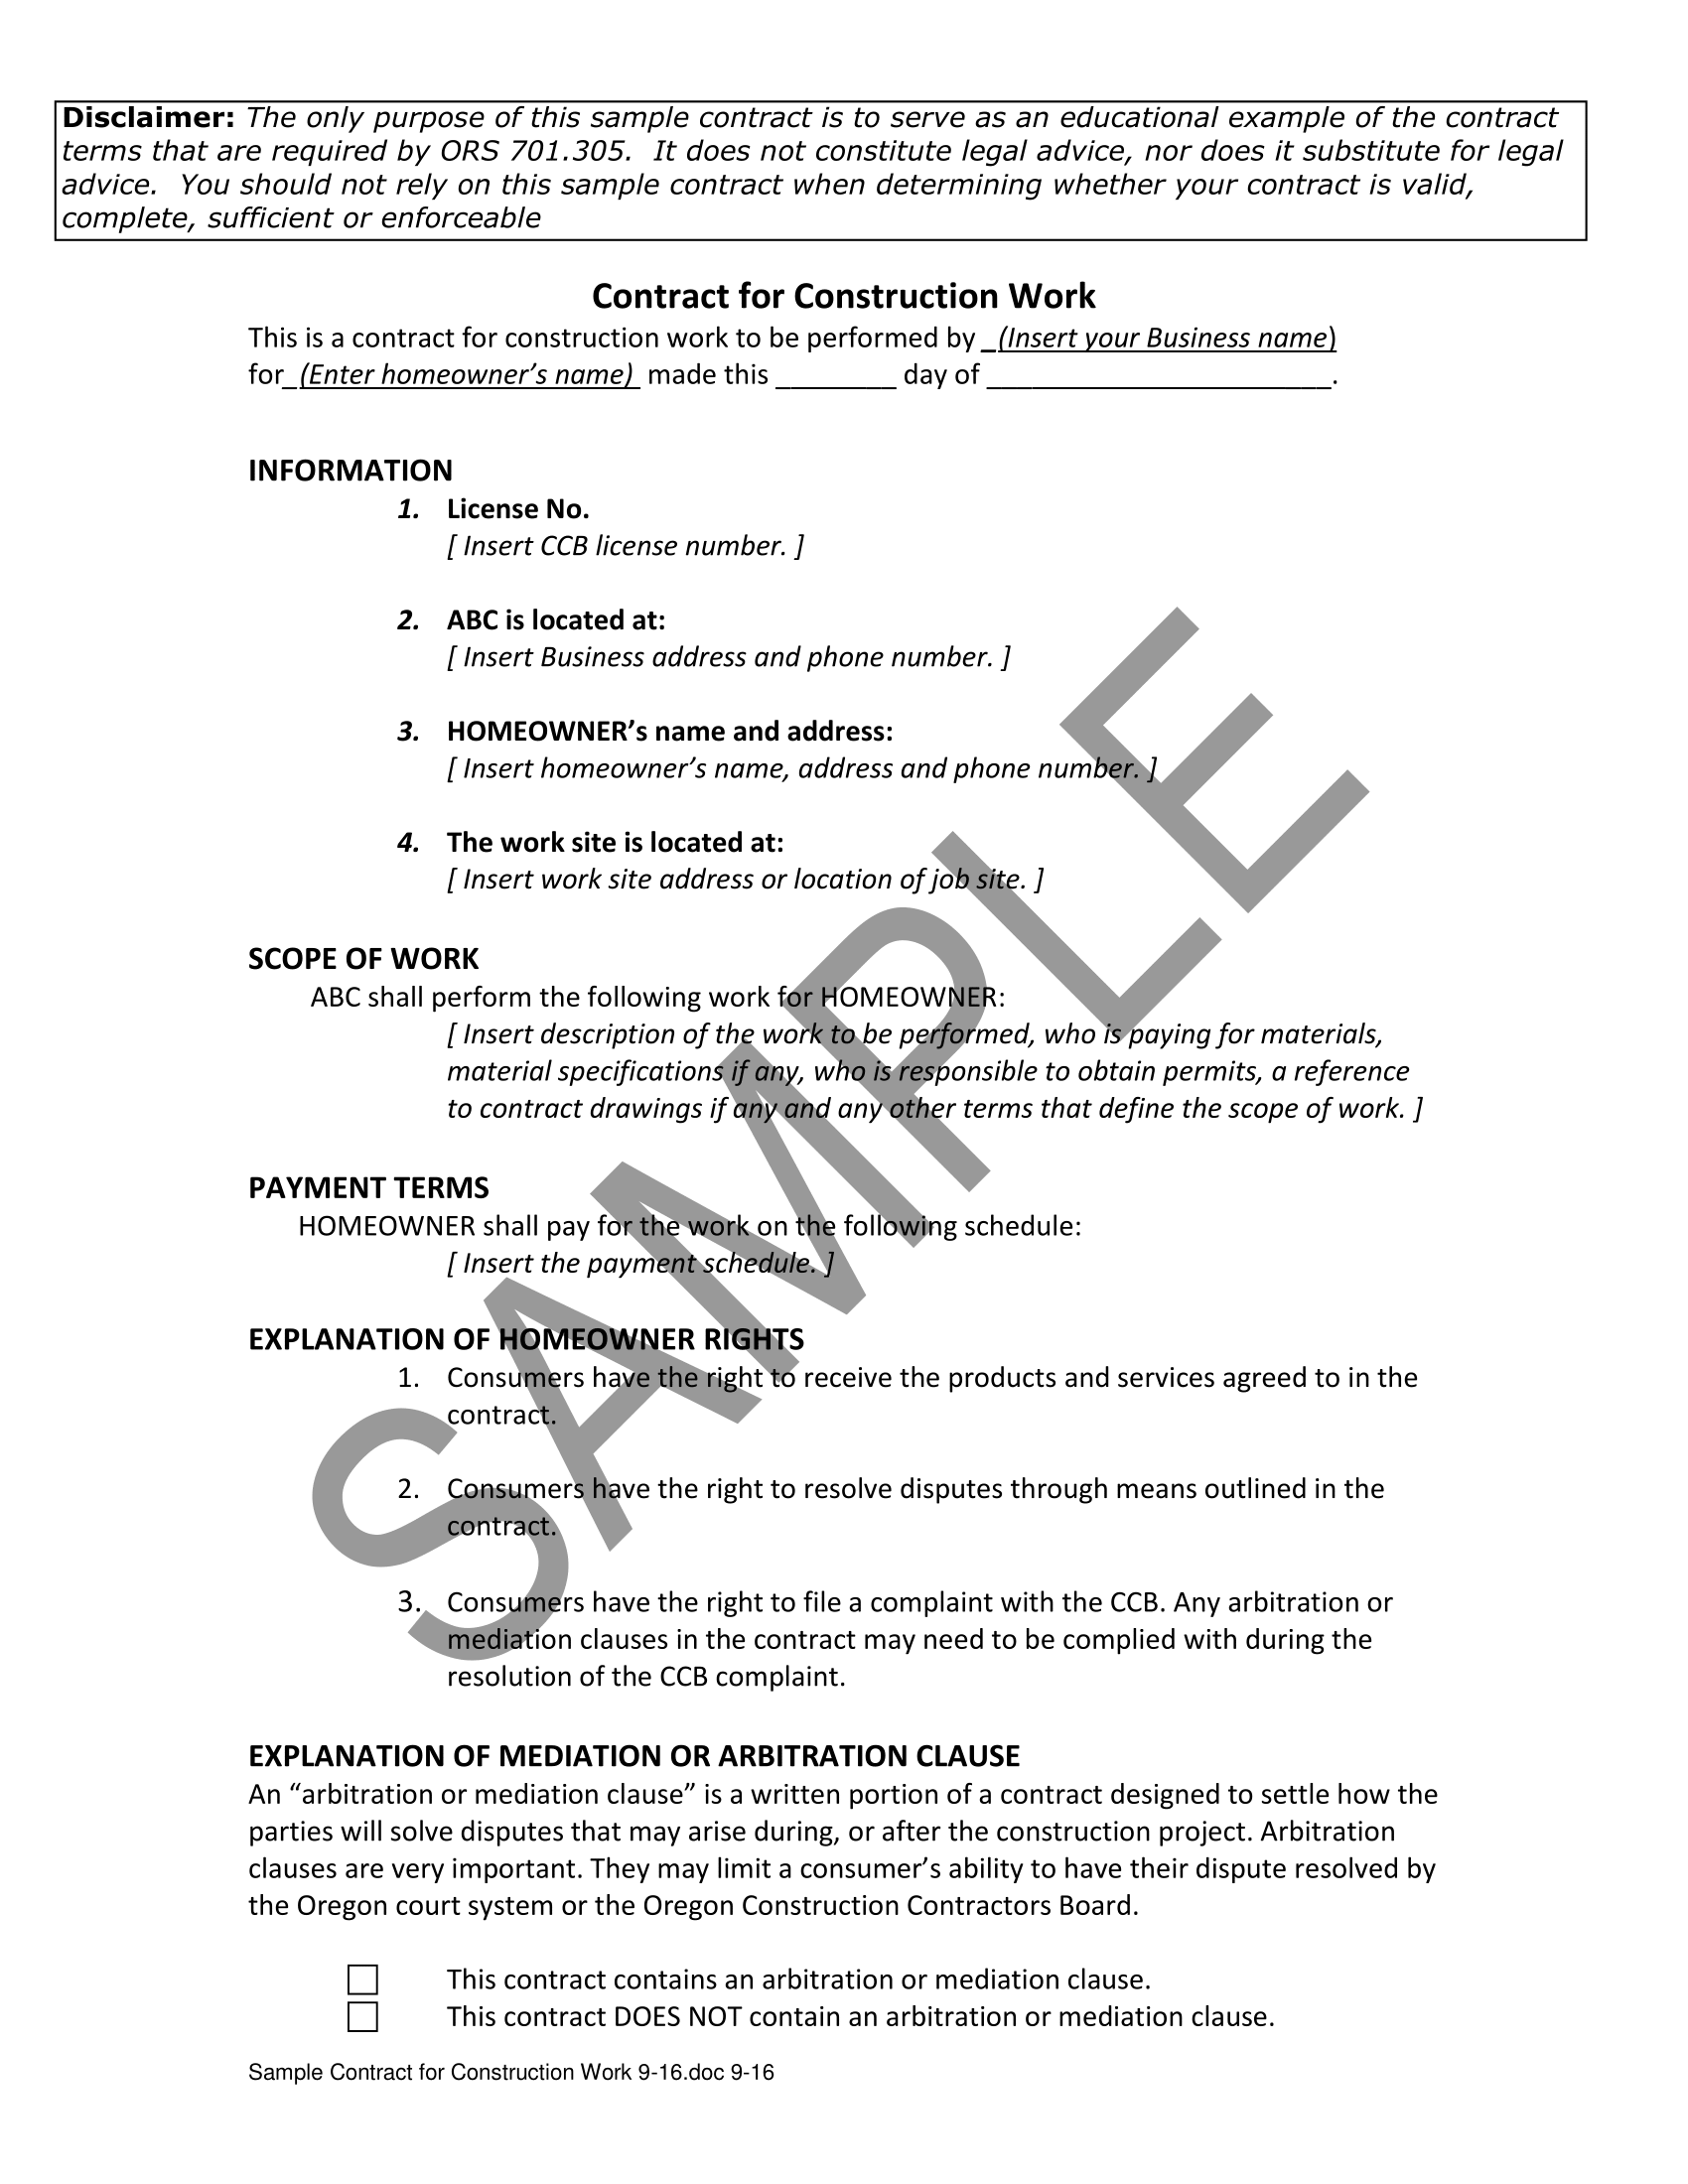 sample contract for construction work 11